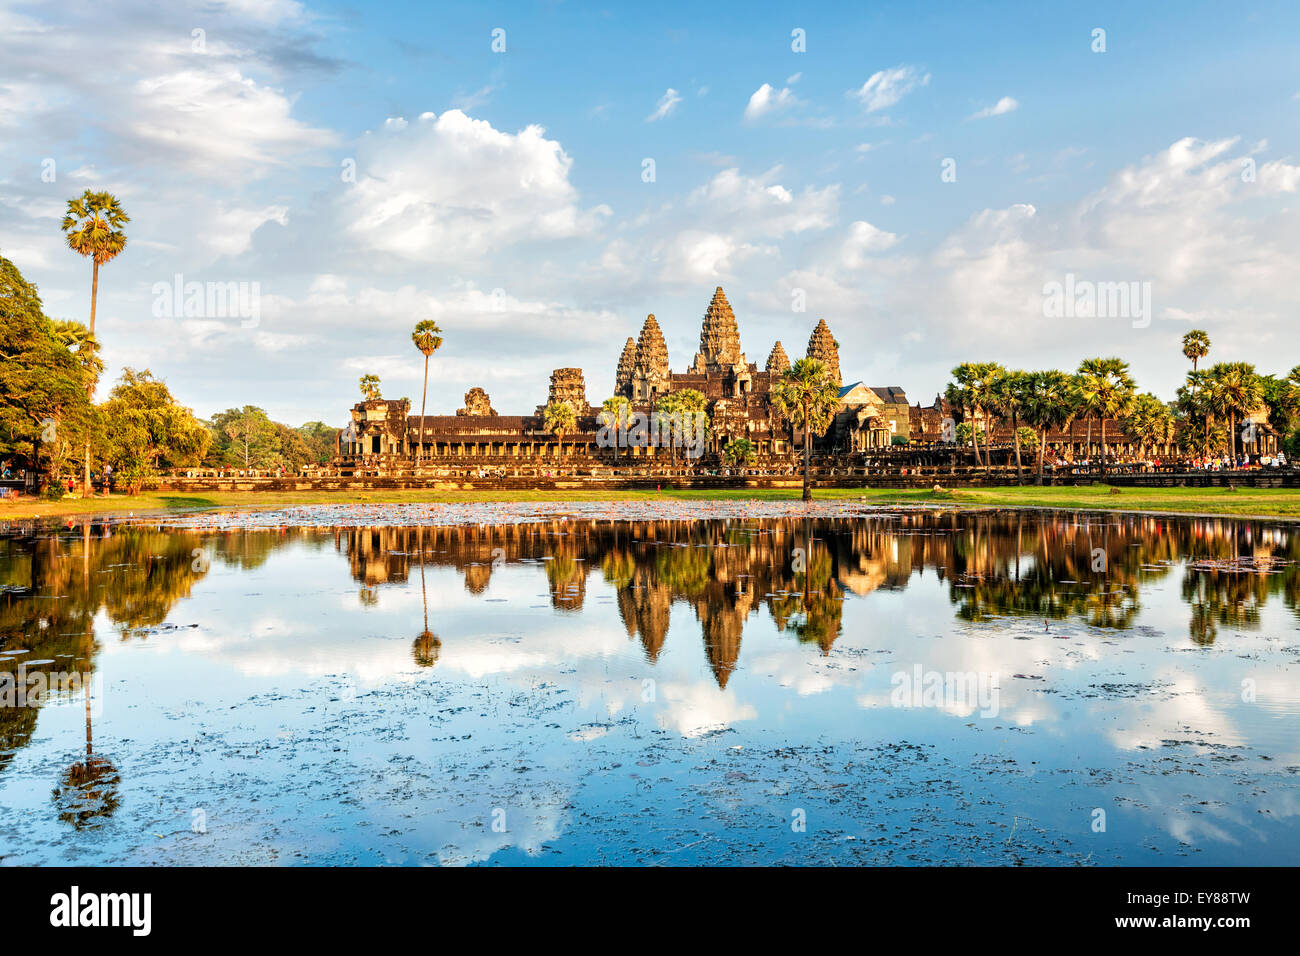 Cambodian landmark Angkor Wat with reflection in water on sunset. Siem Reap, Cambodia - Stock Image